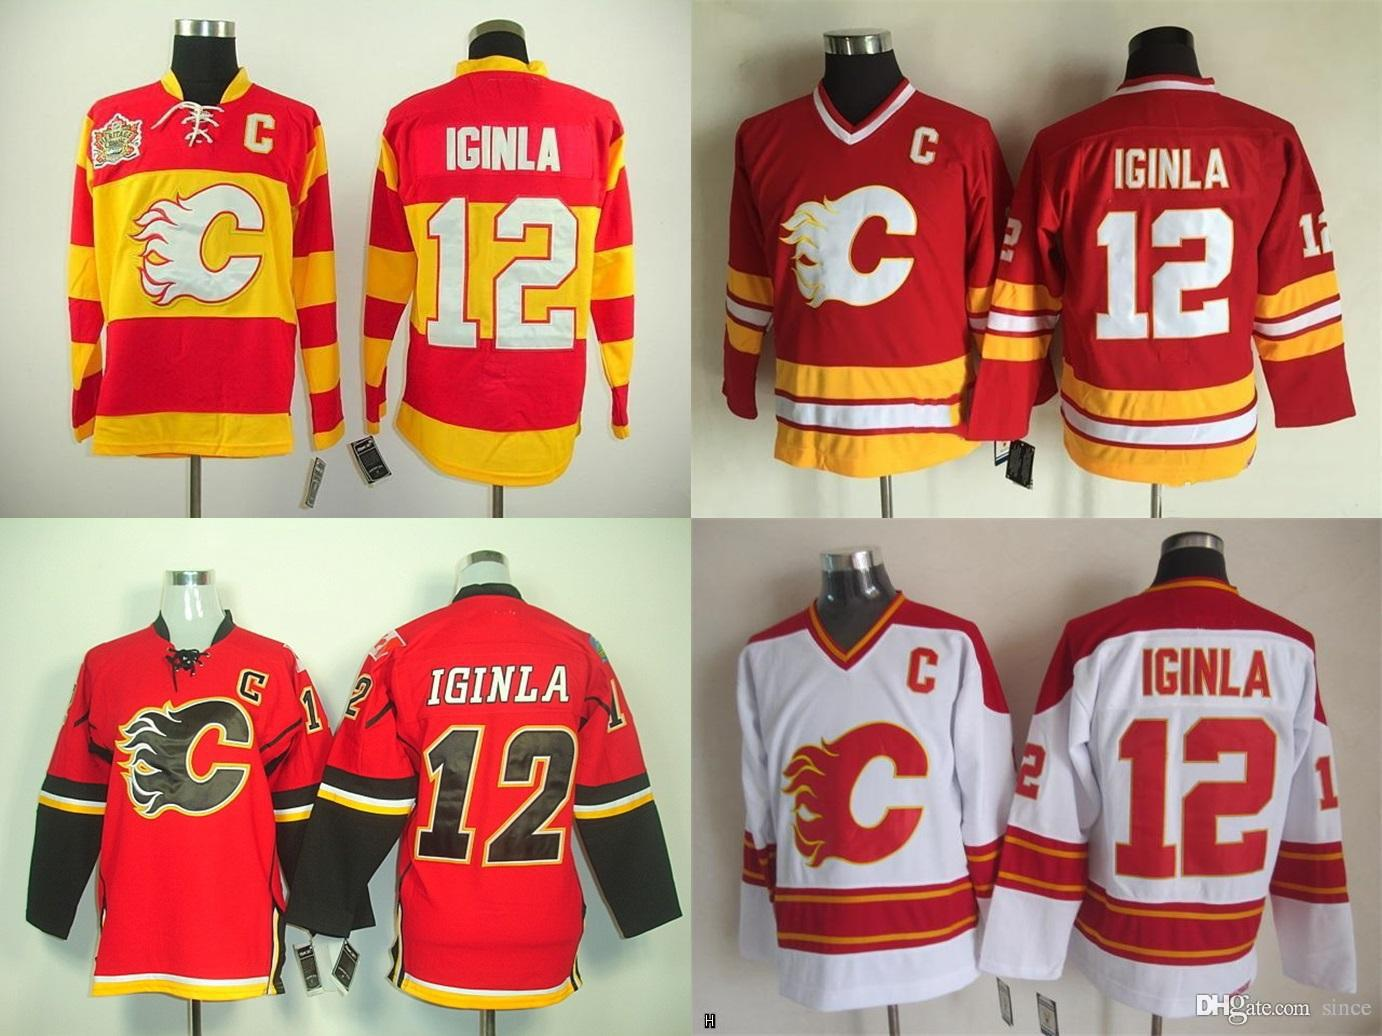 a1827ac75 2019 2016 New Cheap Calgary Flames 12 Jarome Iginla Jersey Team Color Home  Red Yellow Stitched With C Patch China Ice Hockey Jerseys From Since, ...